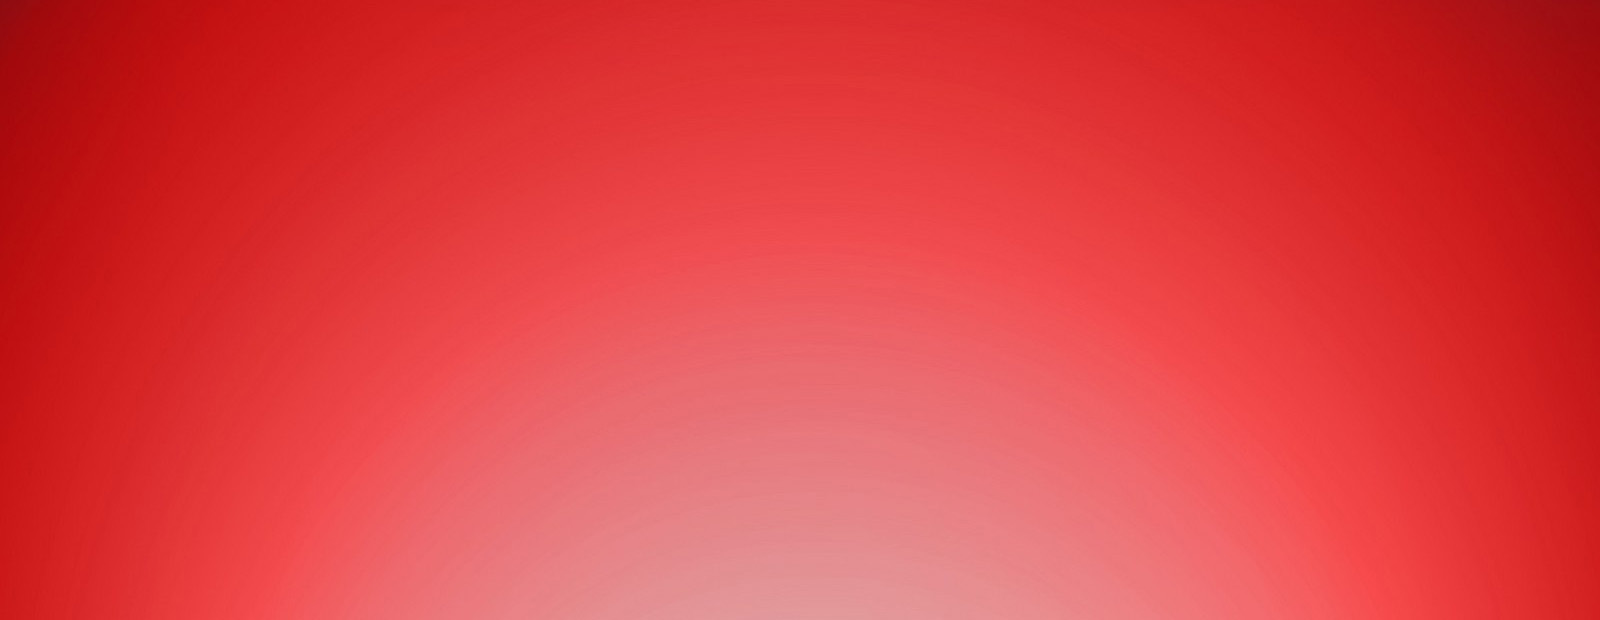 Red-Background-Images